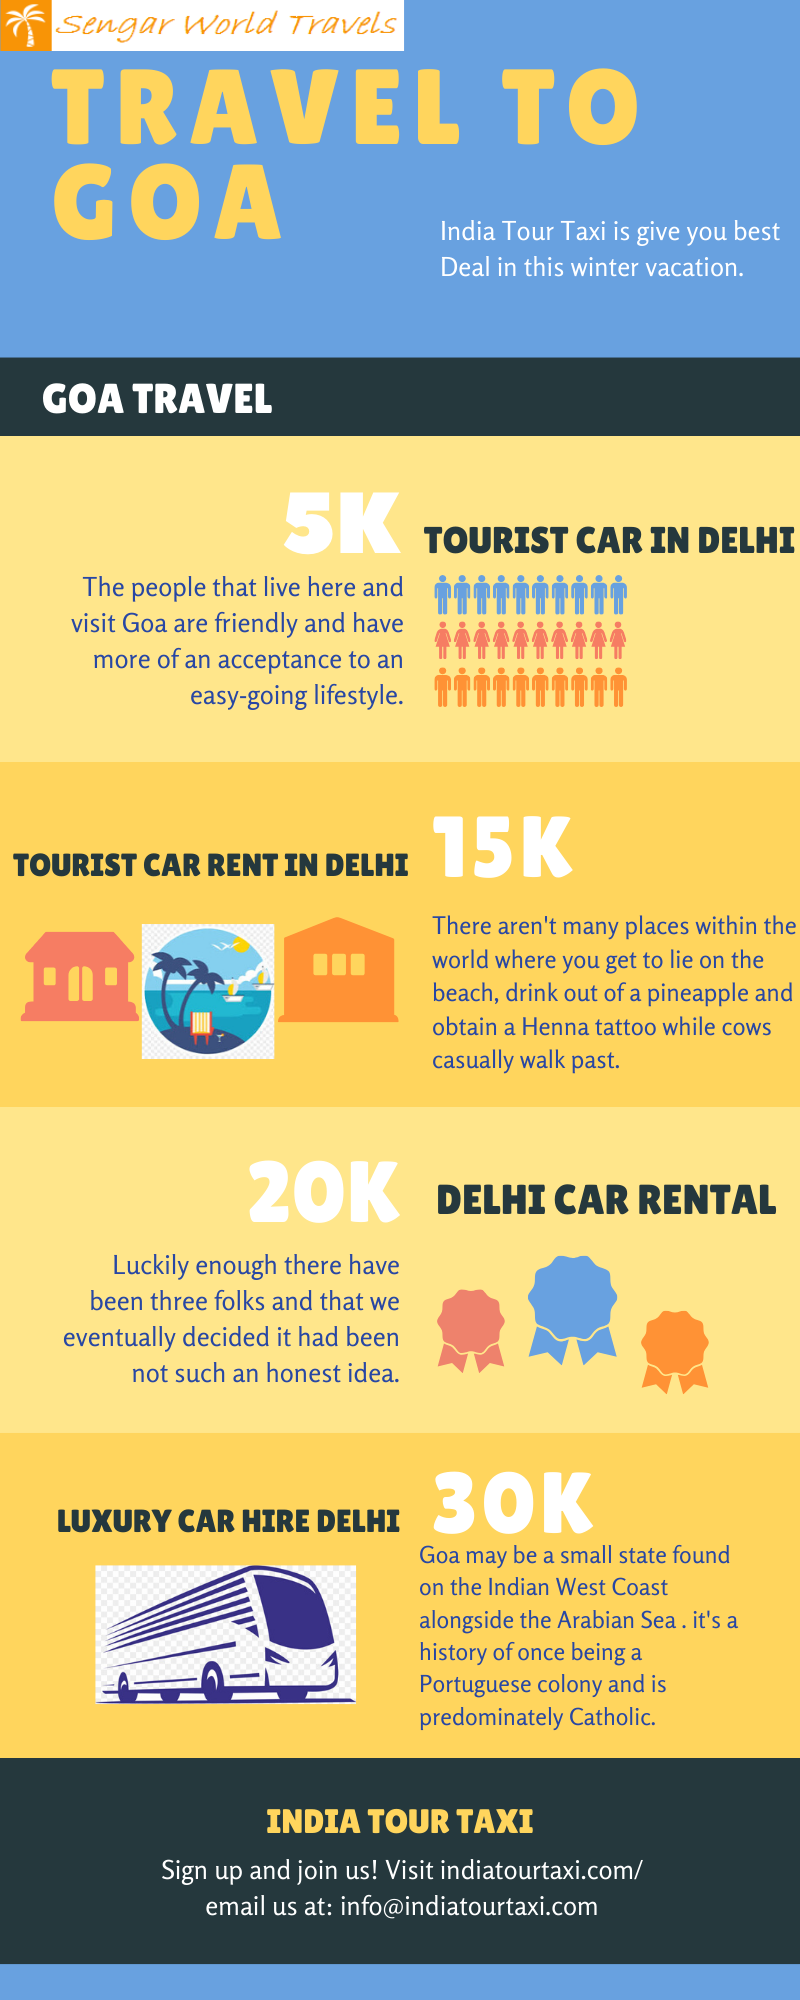 Car On Rent In Delhi We Offer The Local Taxi Services Outstation Taxi Services And Company Cab Booking Services In V In 2020 Bell Ringers Google Forms Schools Near Me